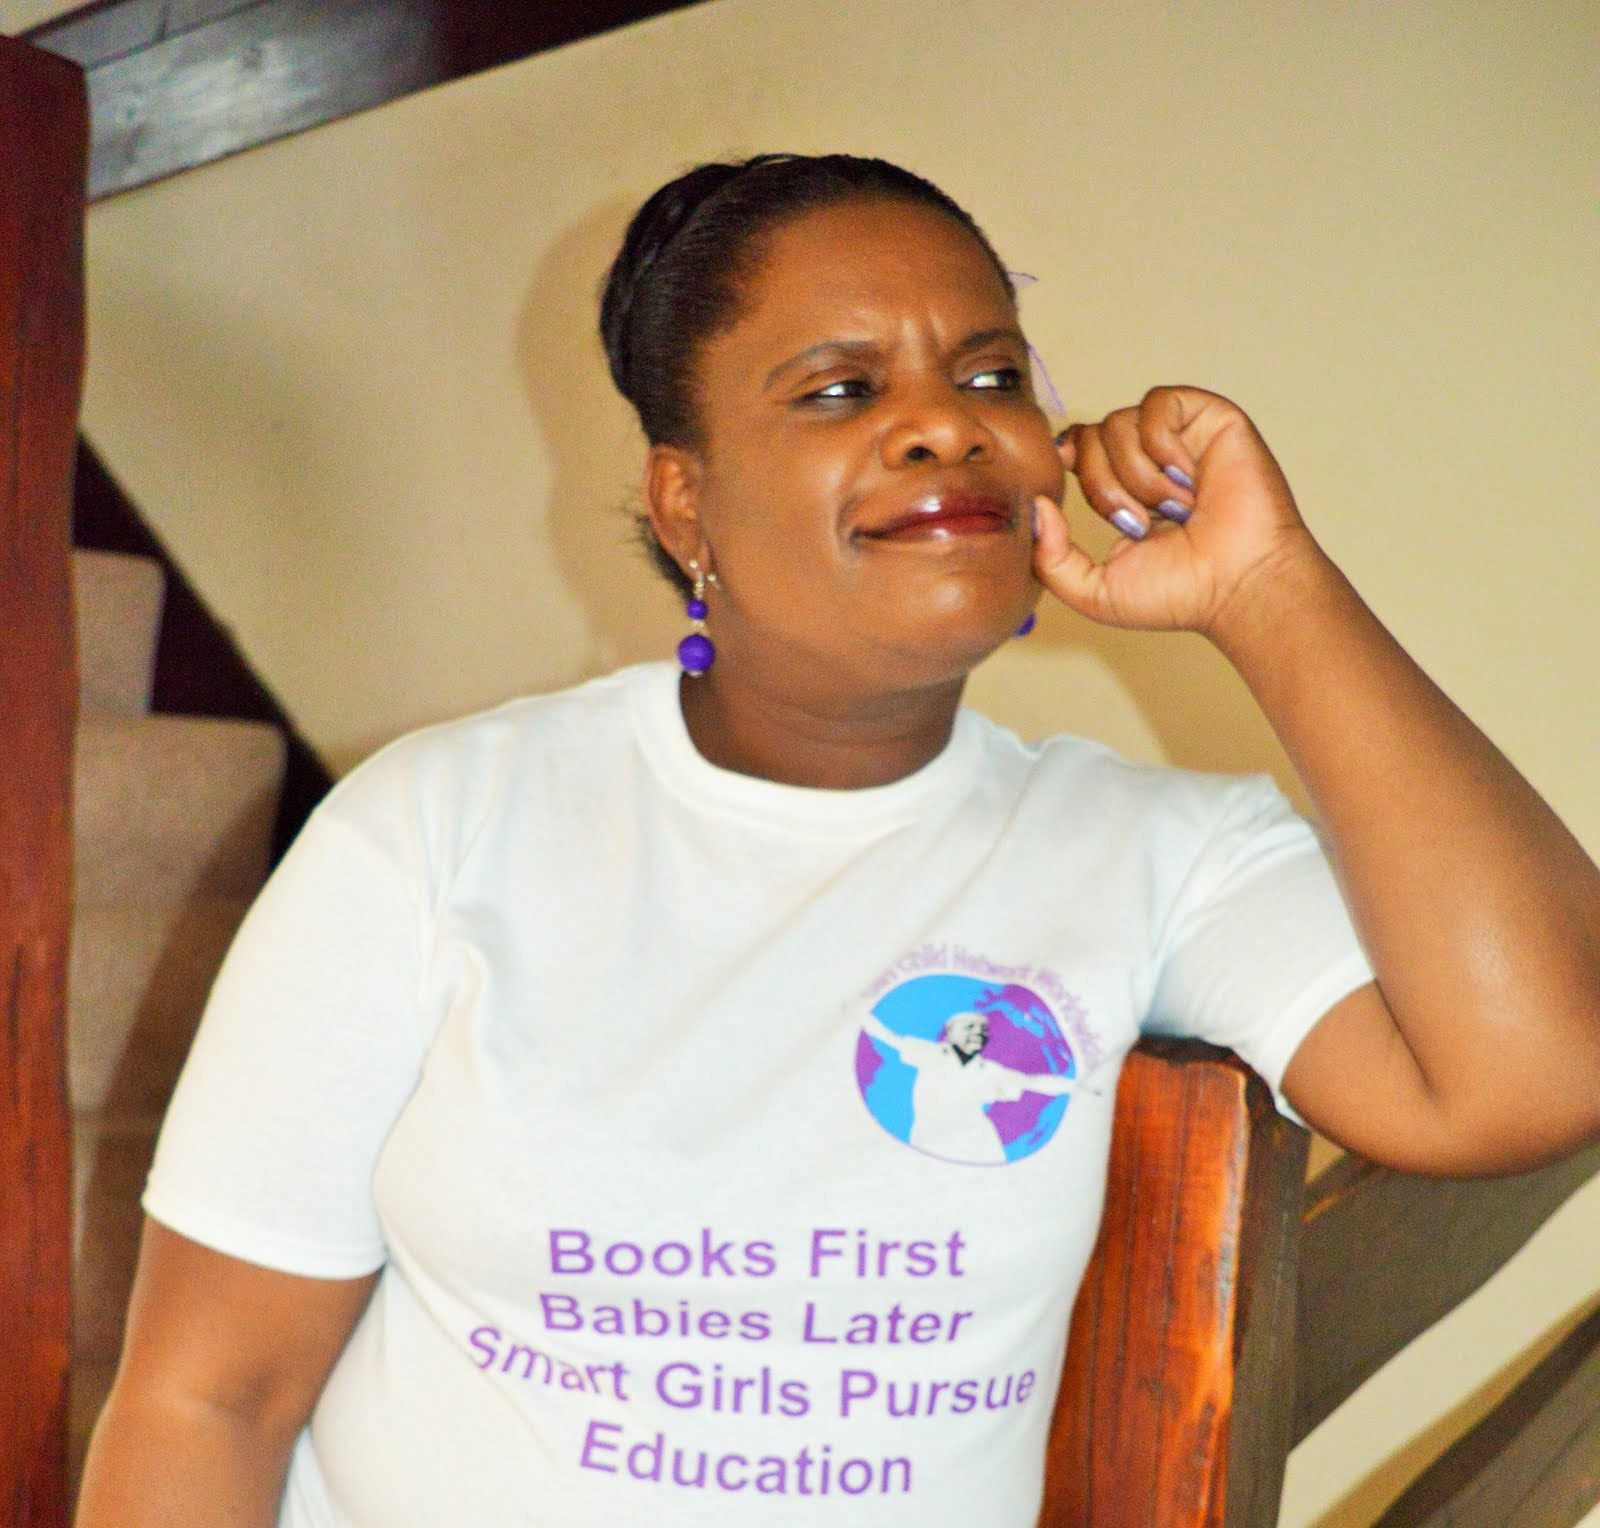 Books First, Babies Later, Smart Girls Pursue Education